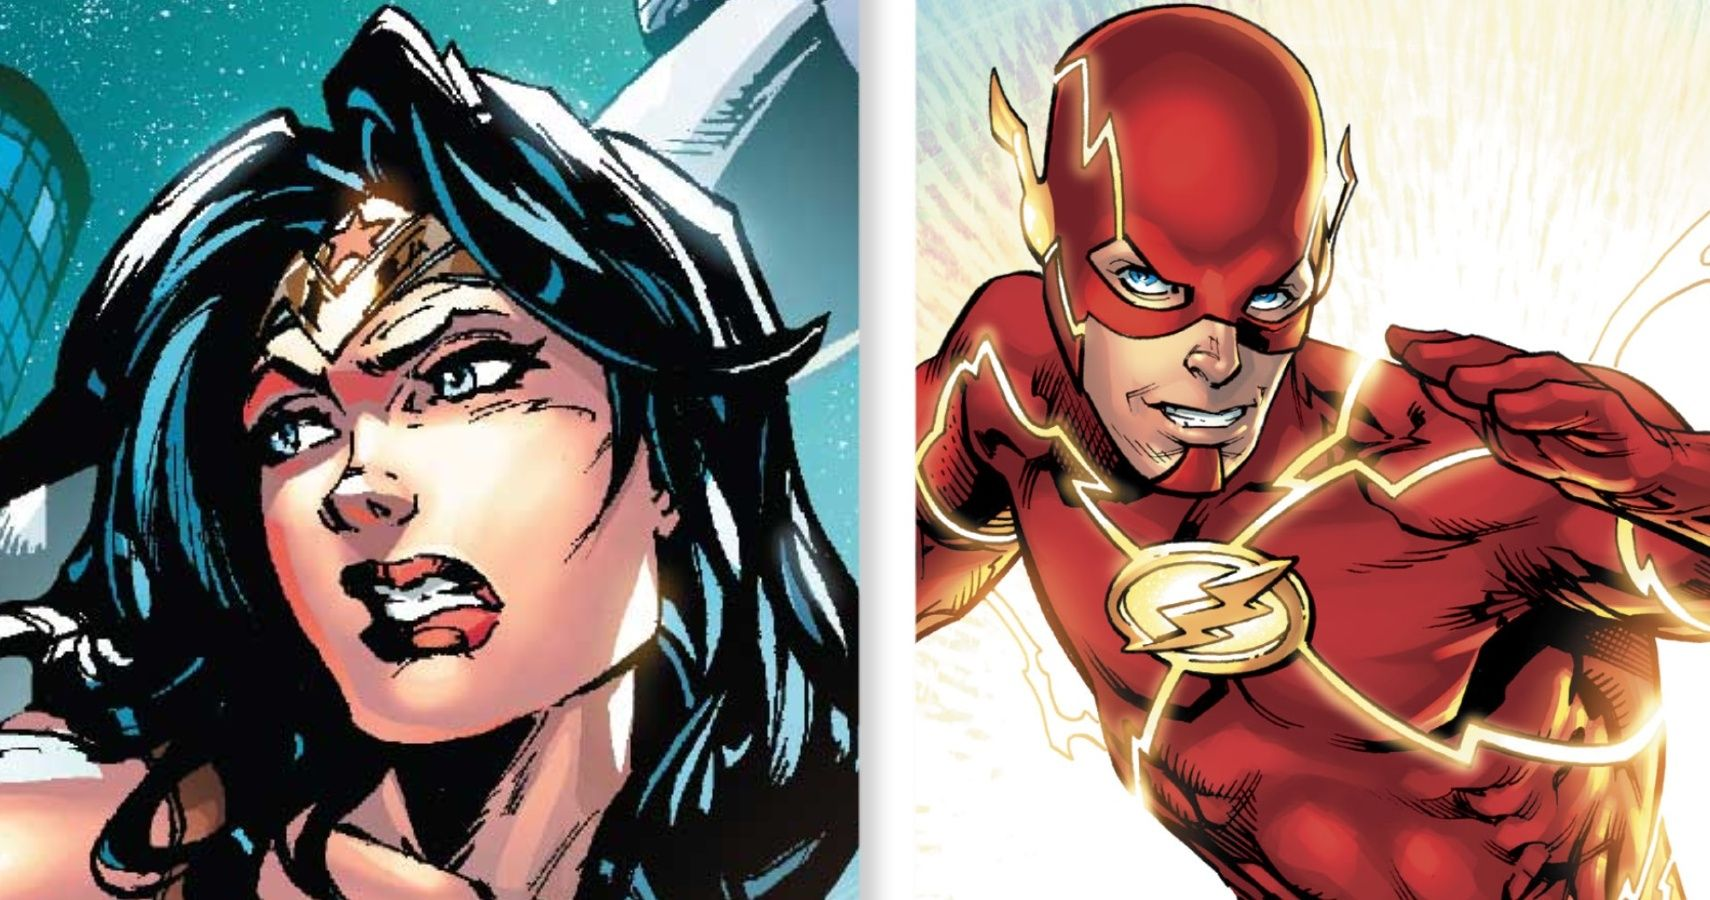 Wonder Woman vs Flash